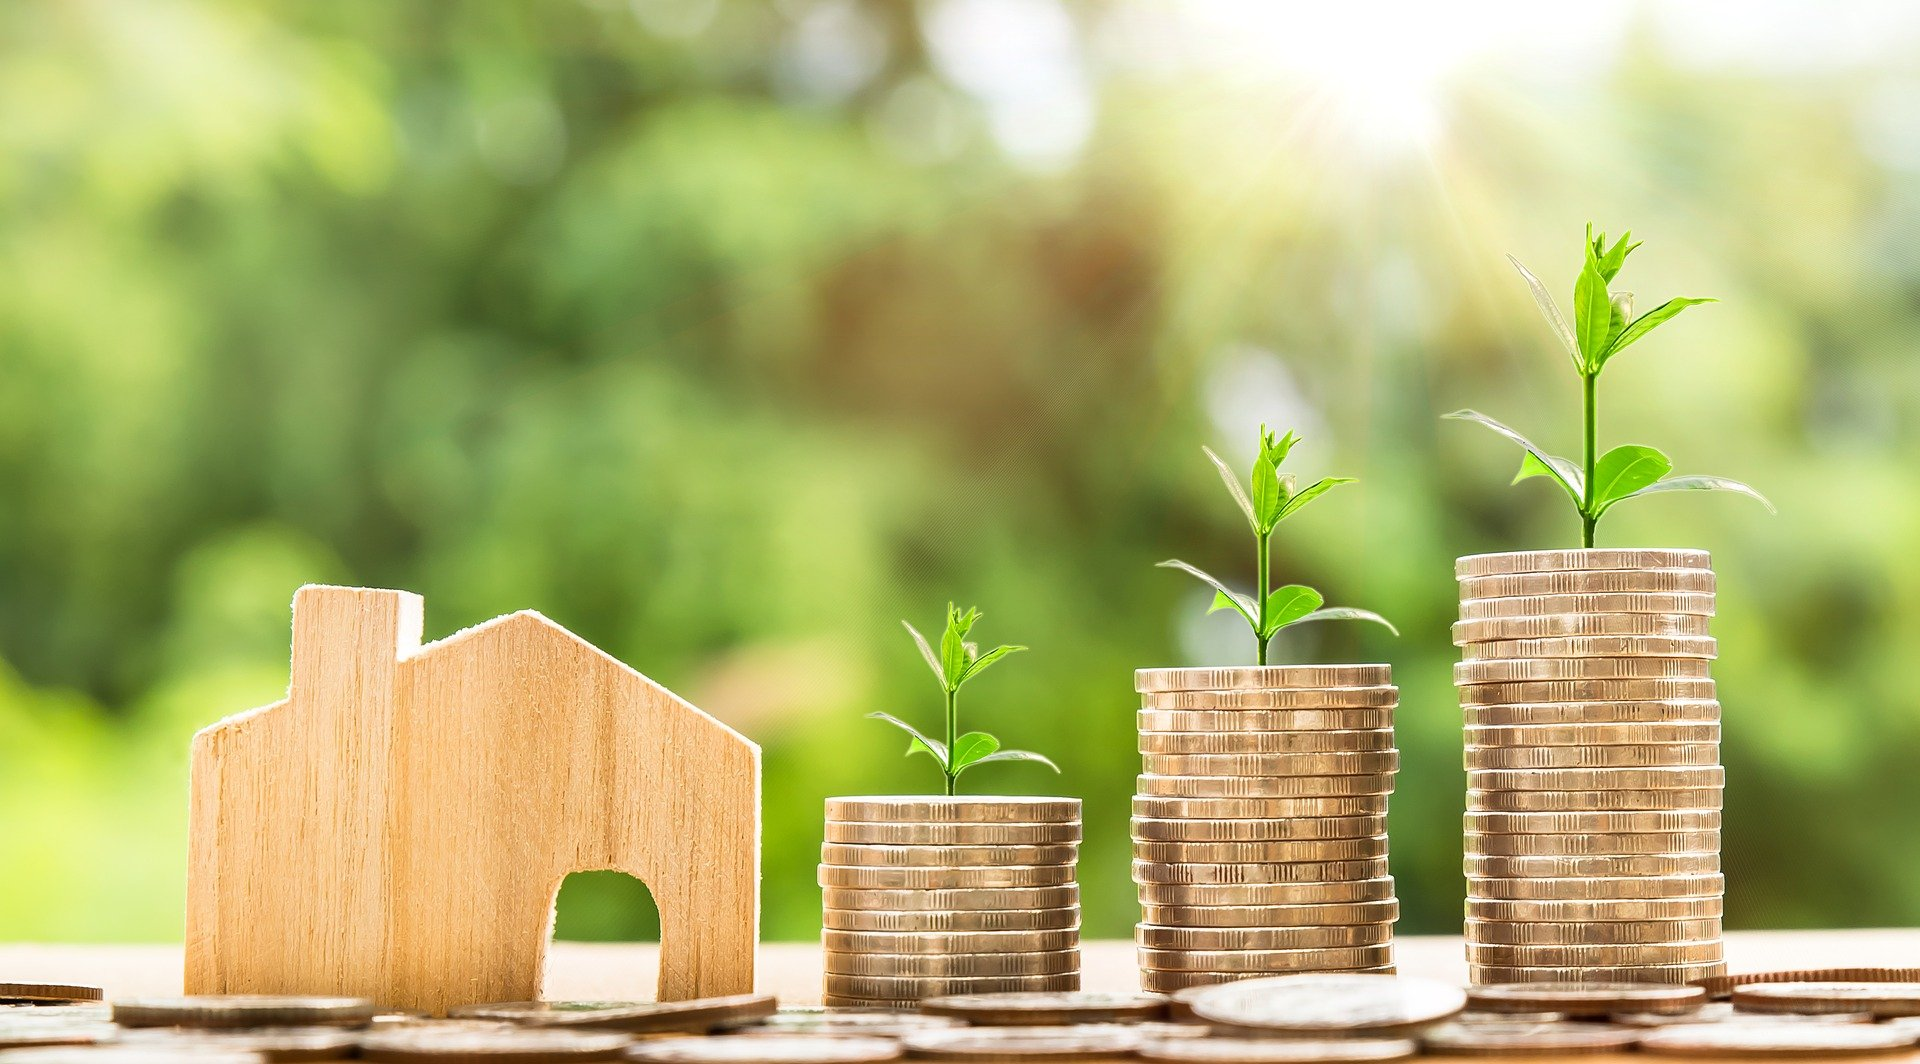 Zuneth Sattar Examines News of House Price Growth Jump to 11.4% in October 2020